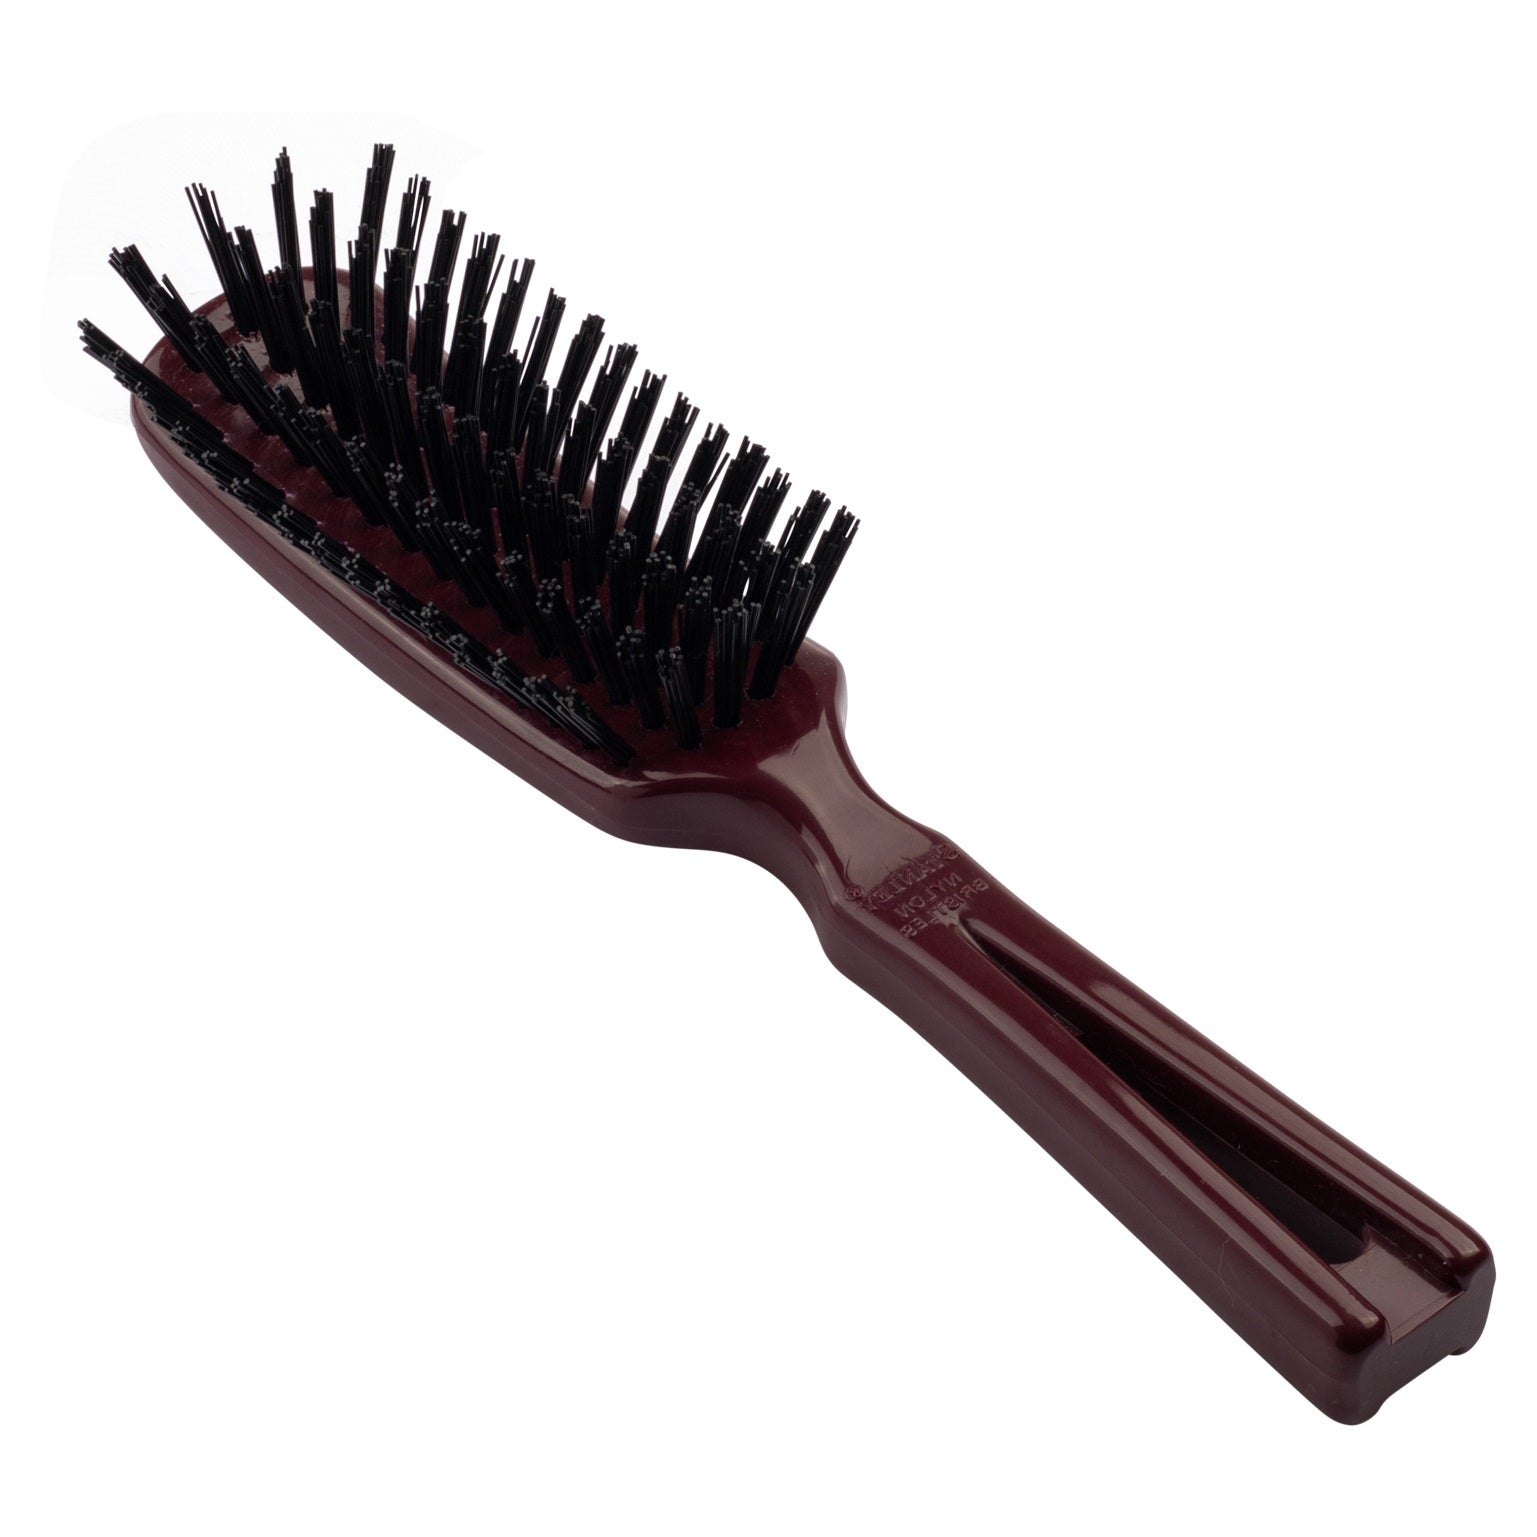 Commander Womens Hairbrush For Tough Hair, Wet or Dry Any length - Mulberry